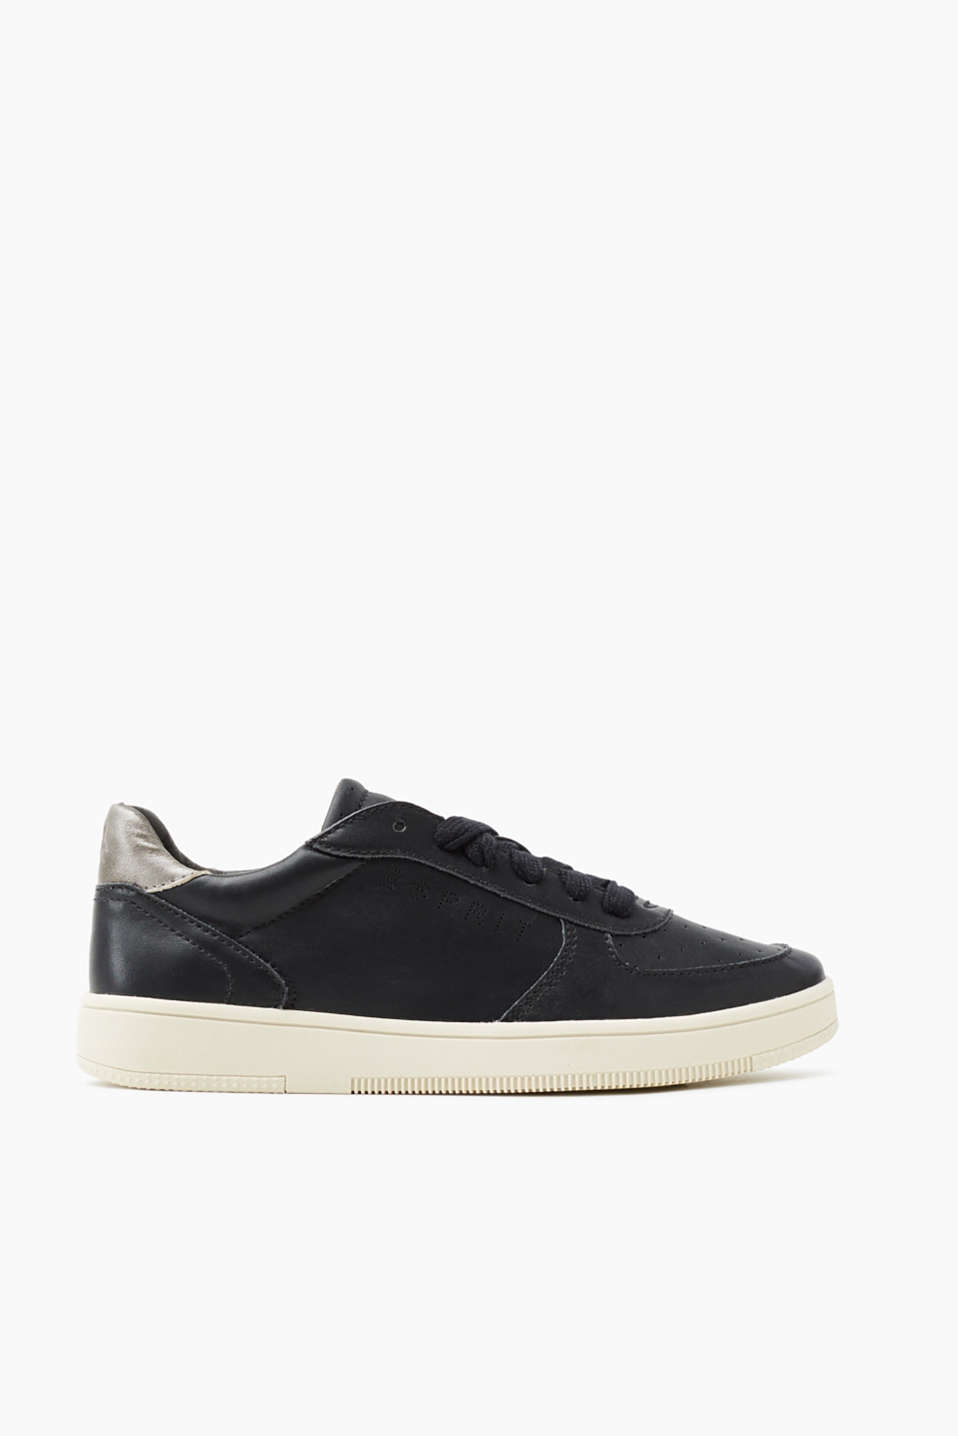 Vegan lace-up trainers with a contrasting rubber outsole